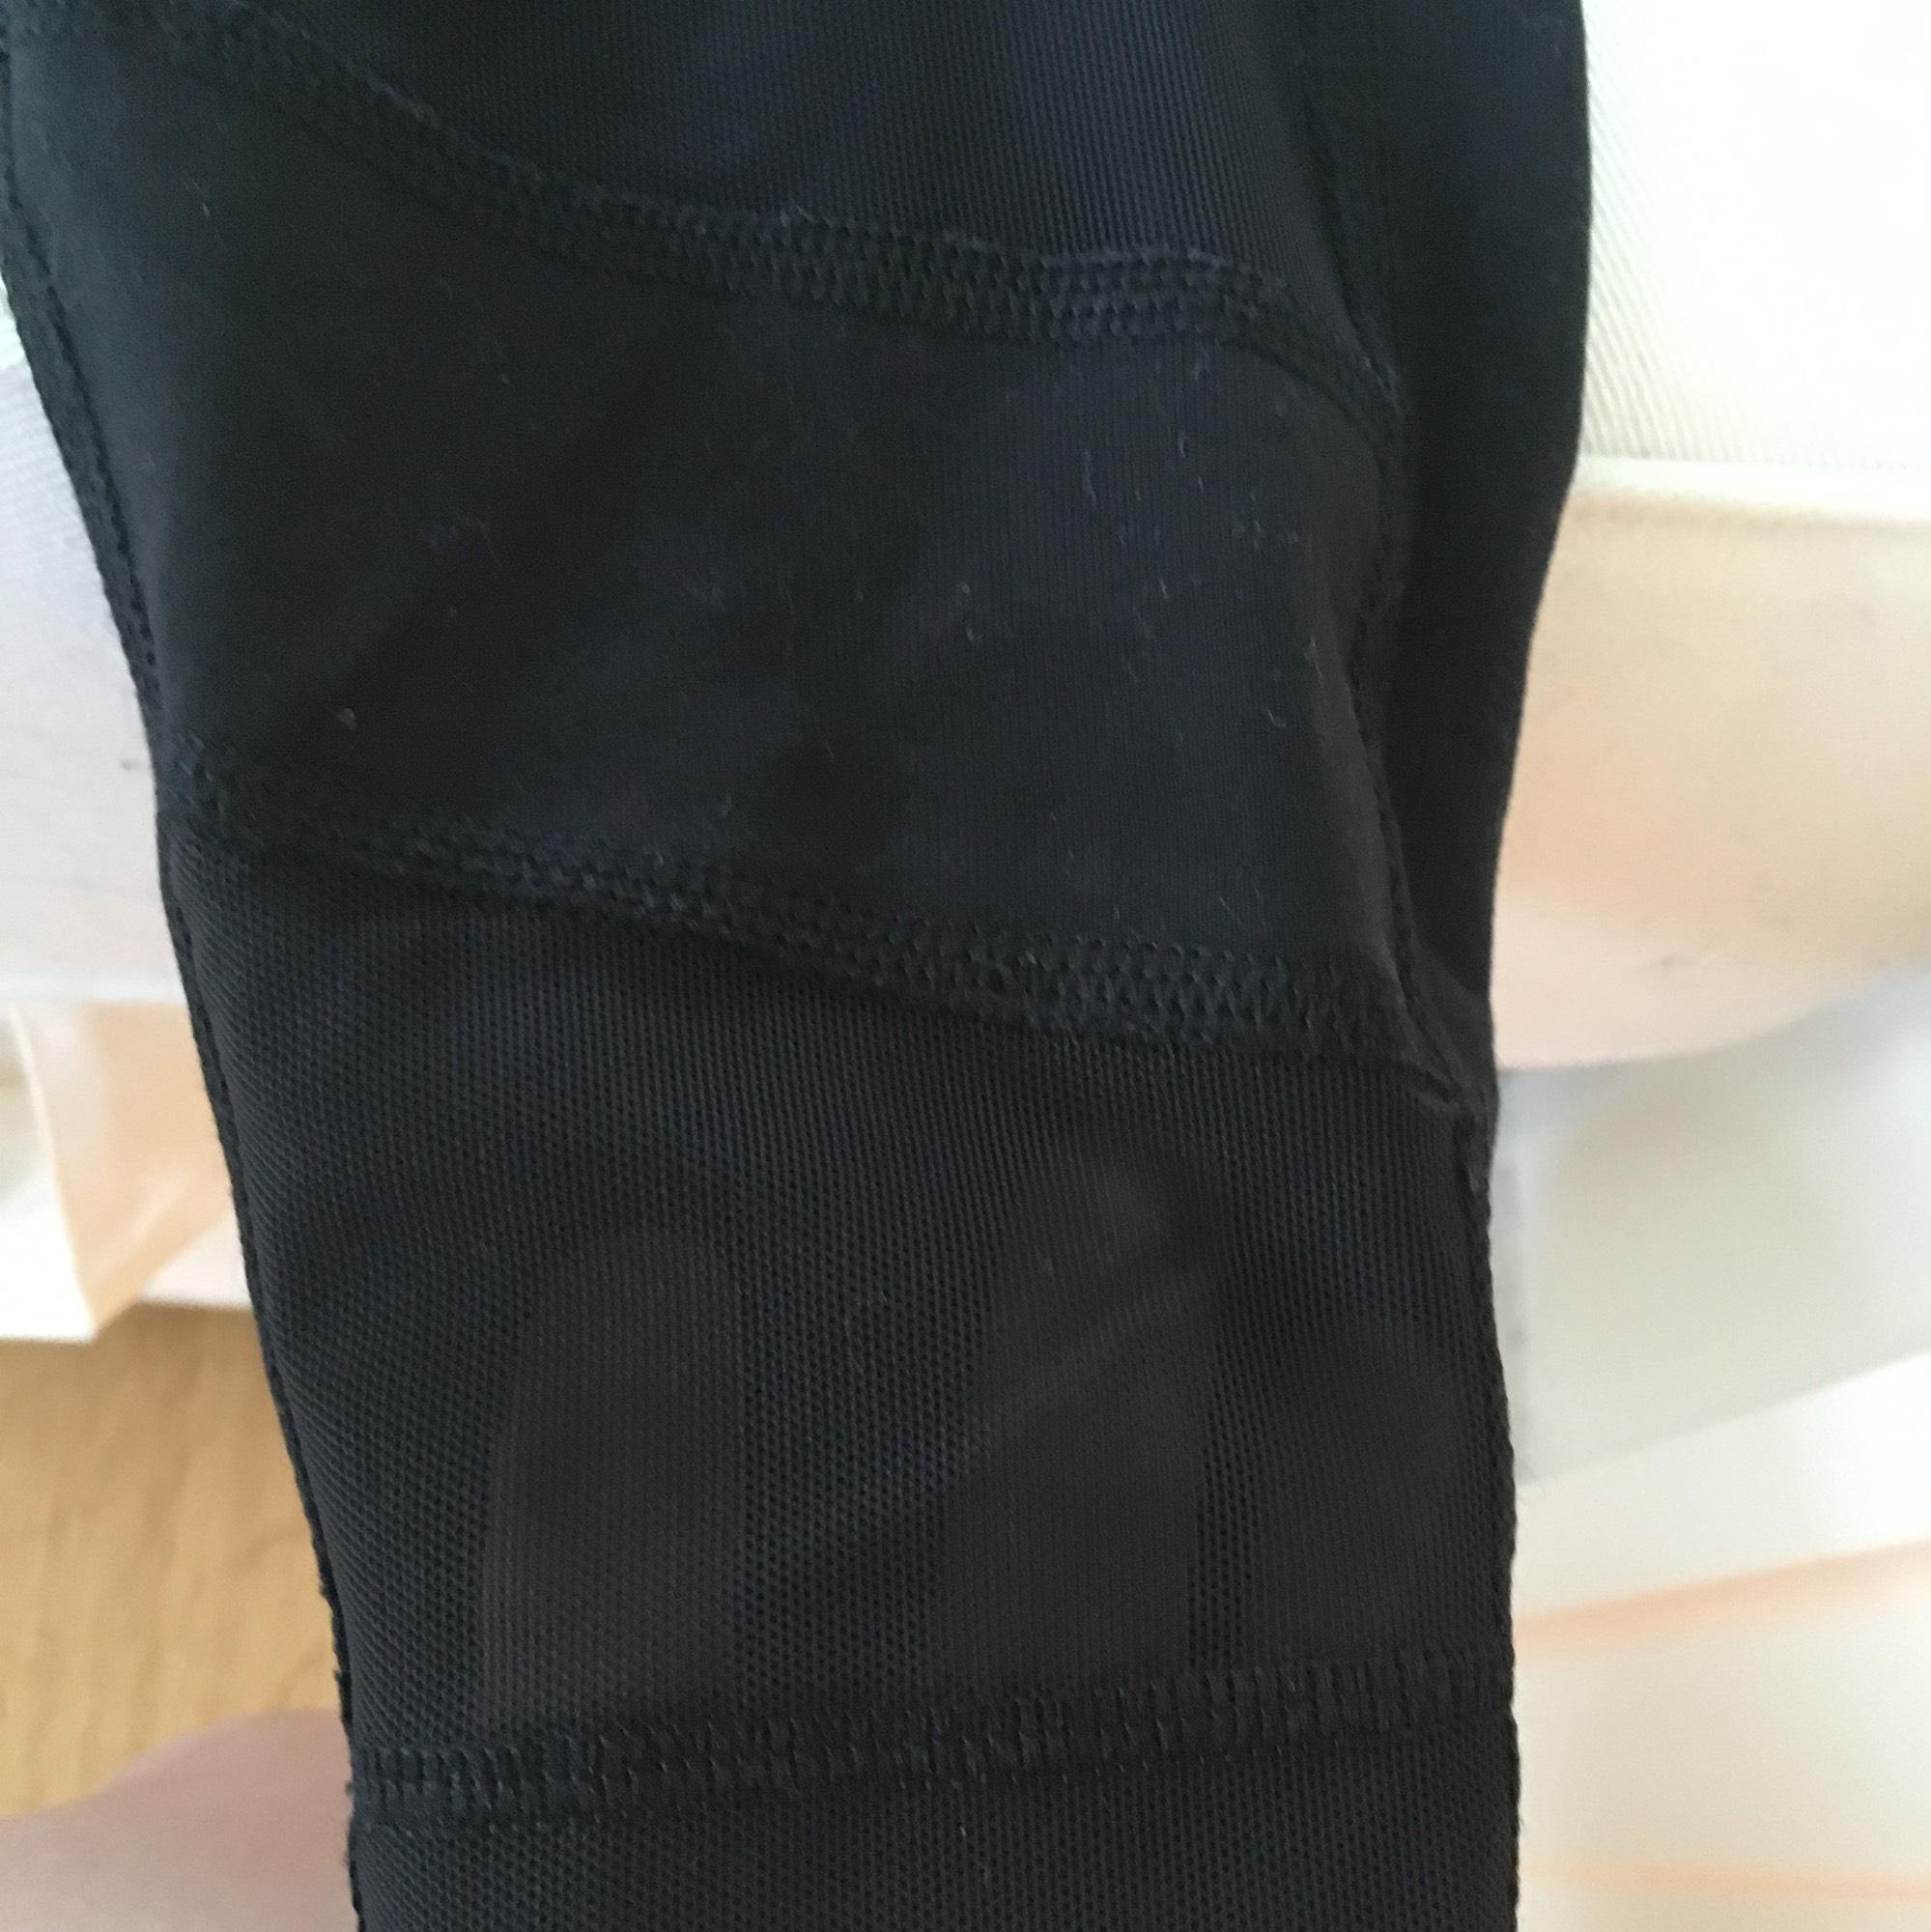 how to get rid of pilling on lululemon pants